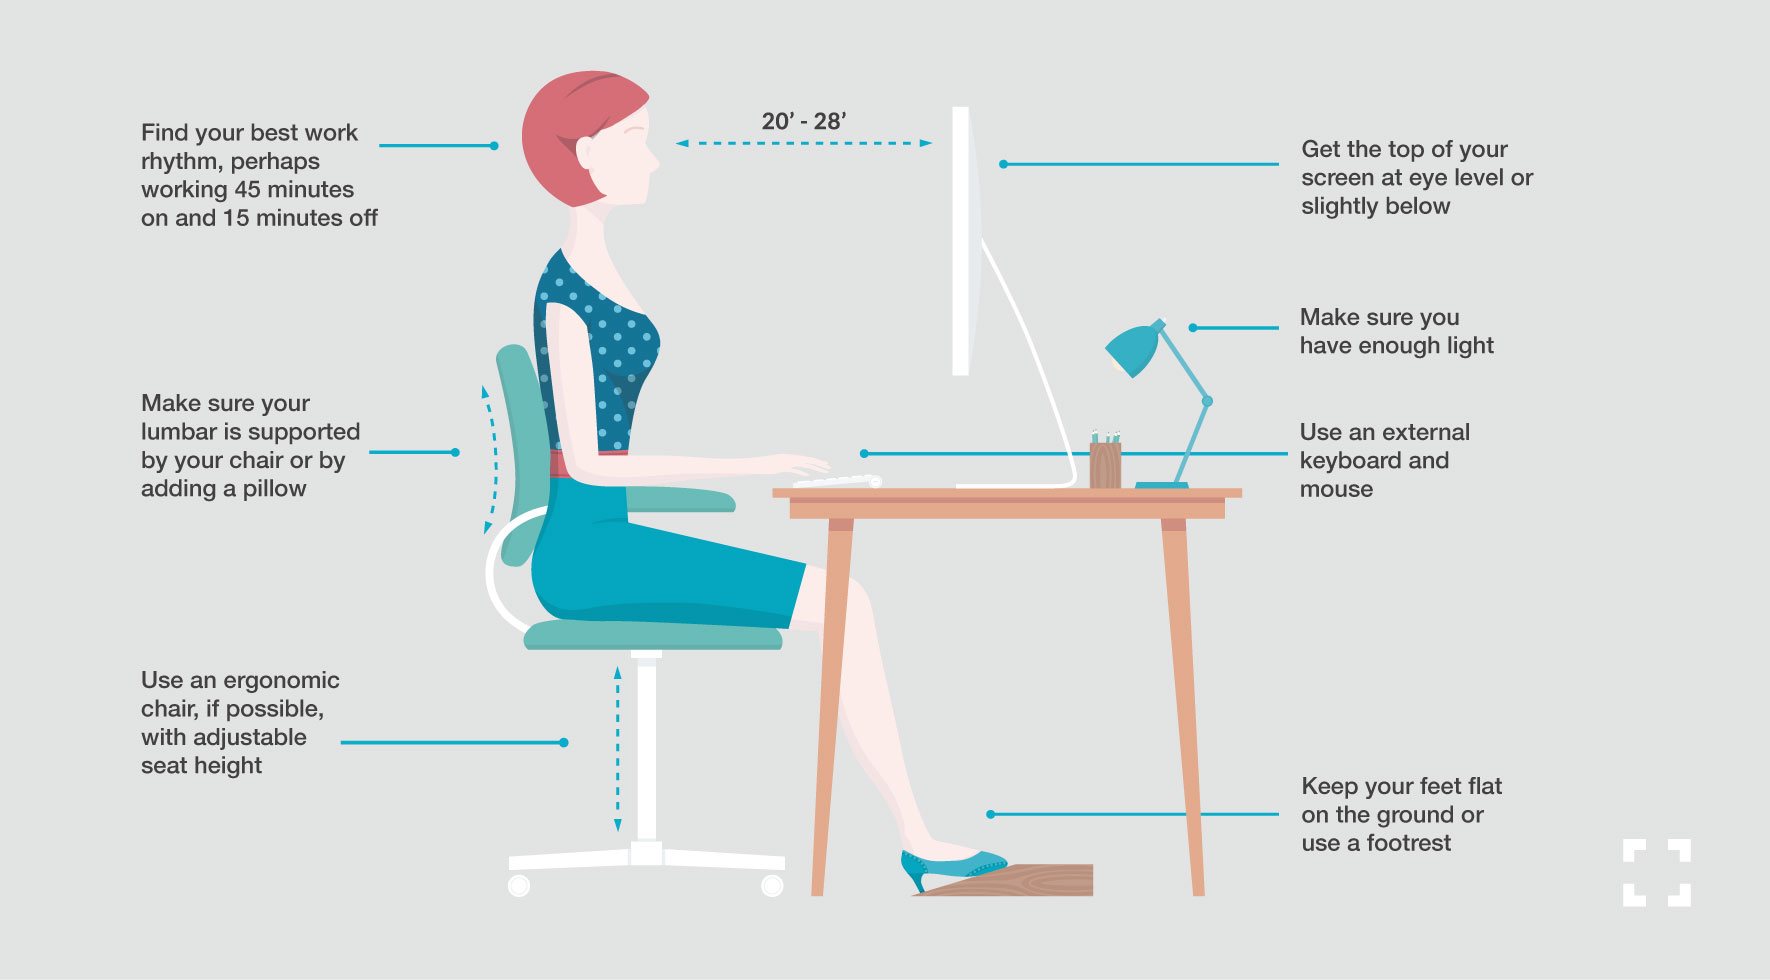 Tips To Create An Ergonomic Home Office With Existing Materials Around The House